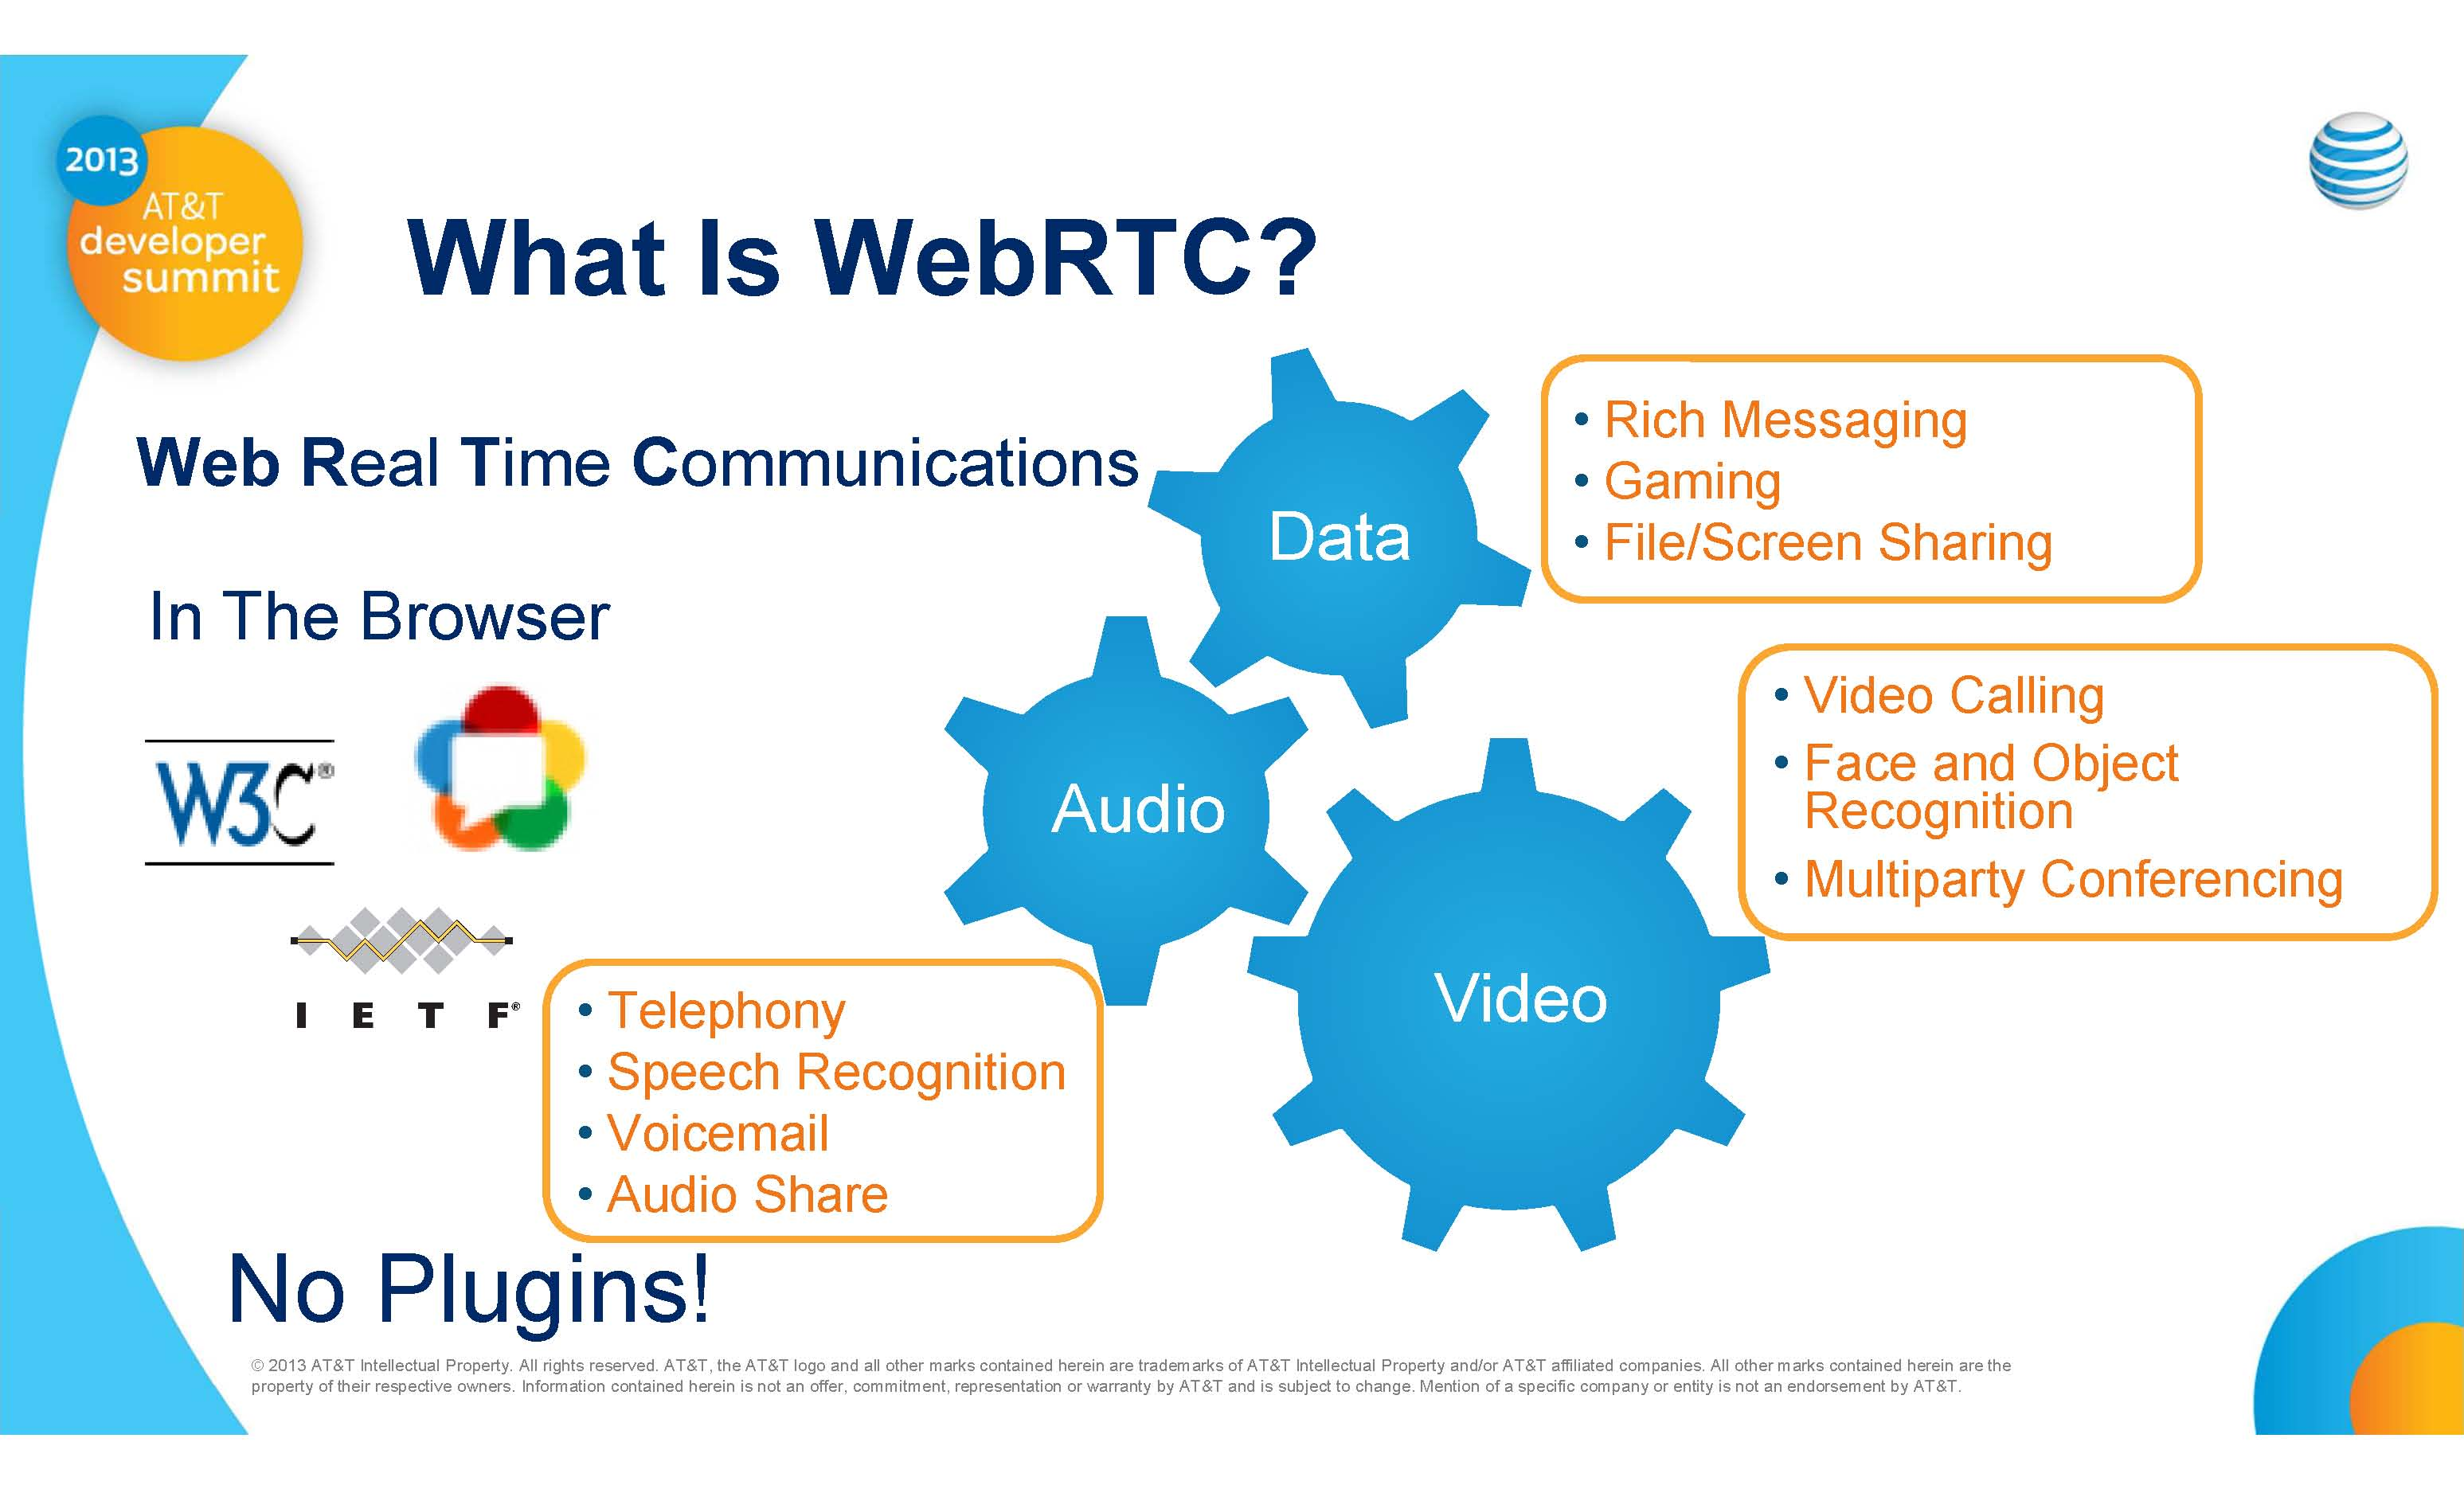 What is WebRTC courtesy of AT&T